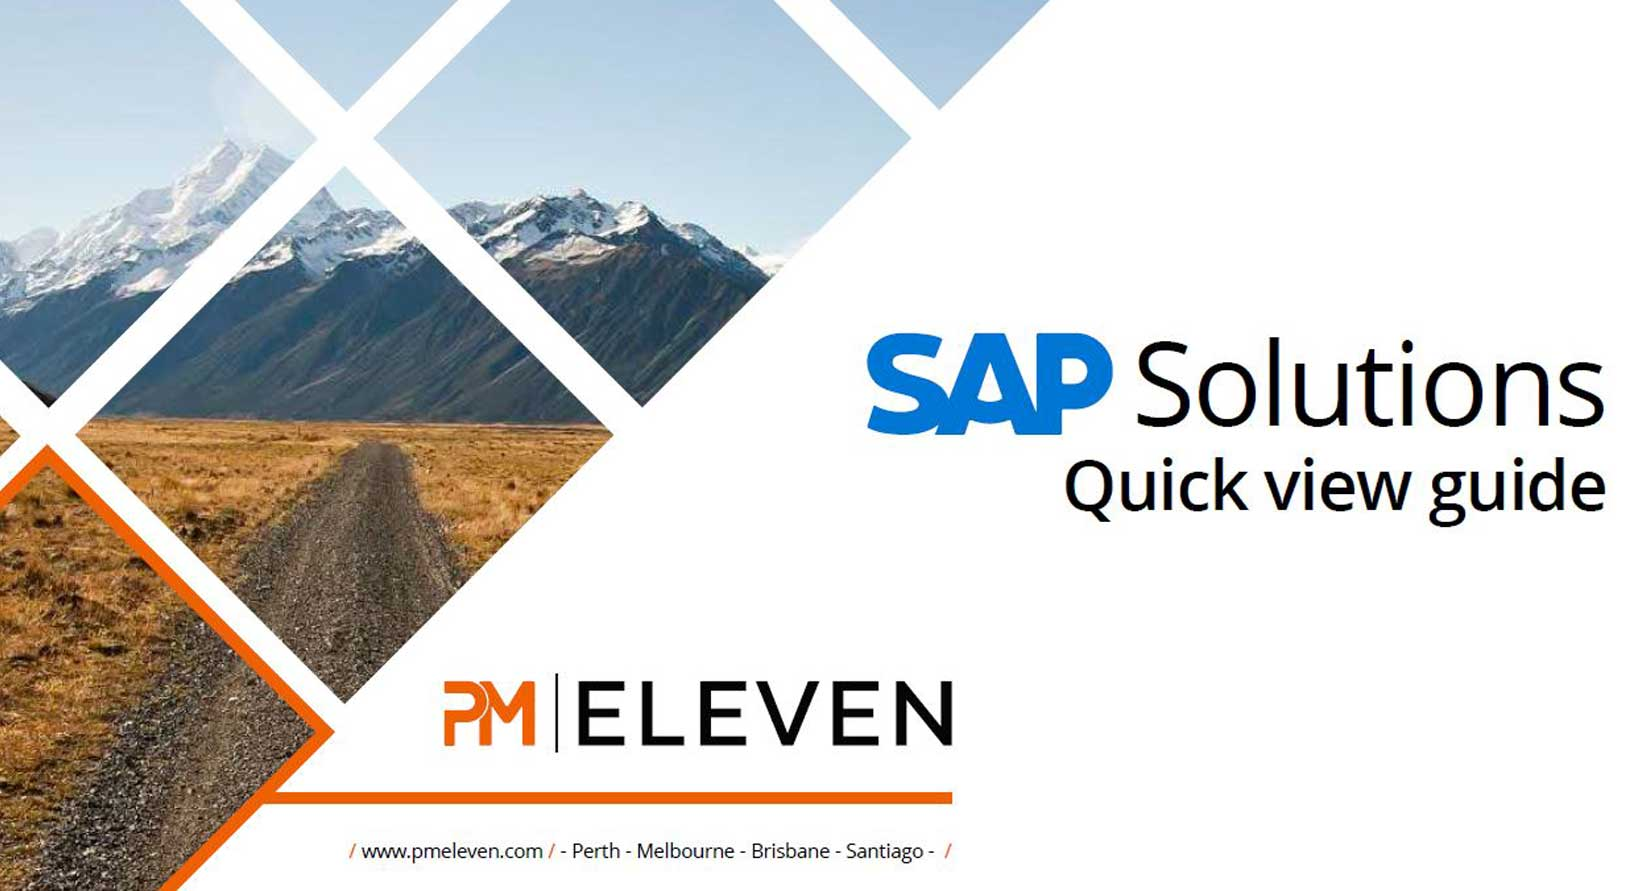 Solutions for SAP | PM Eleven